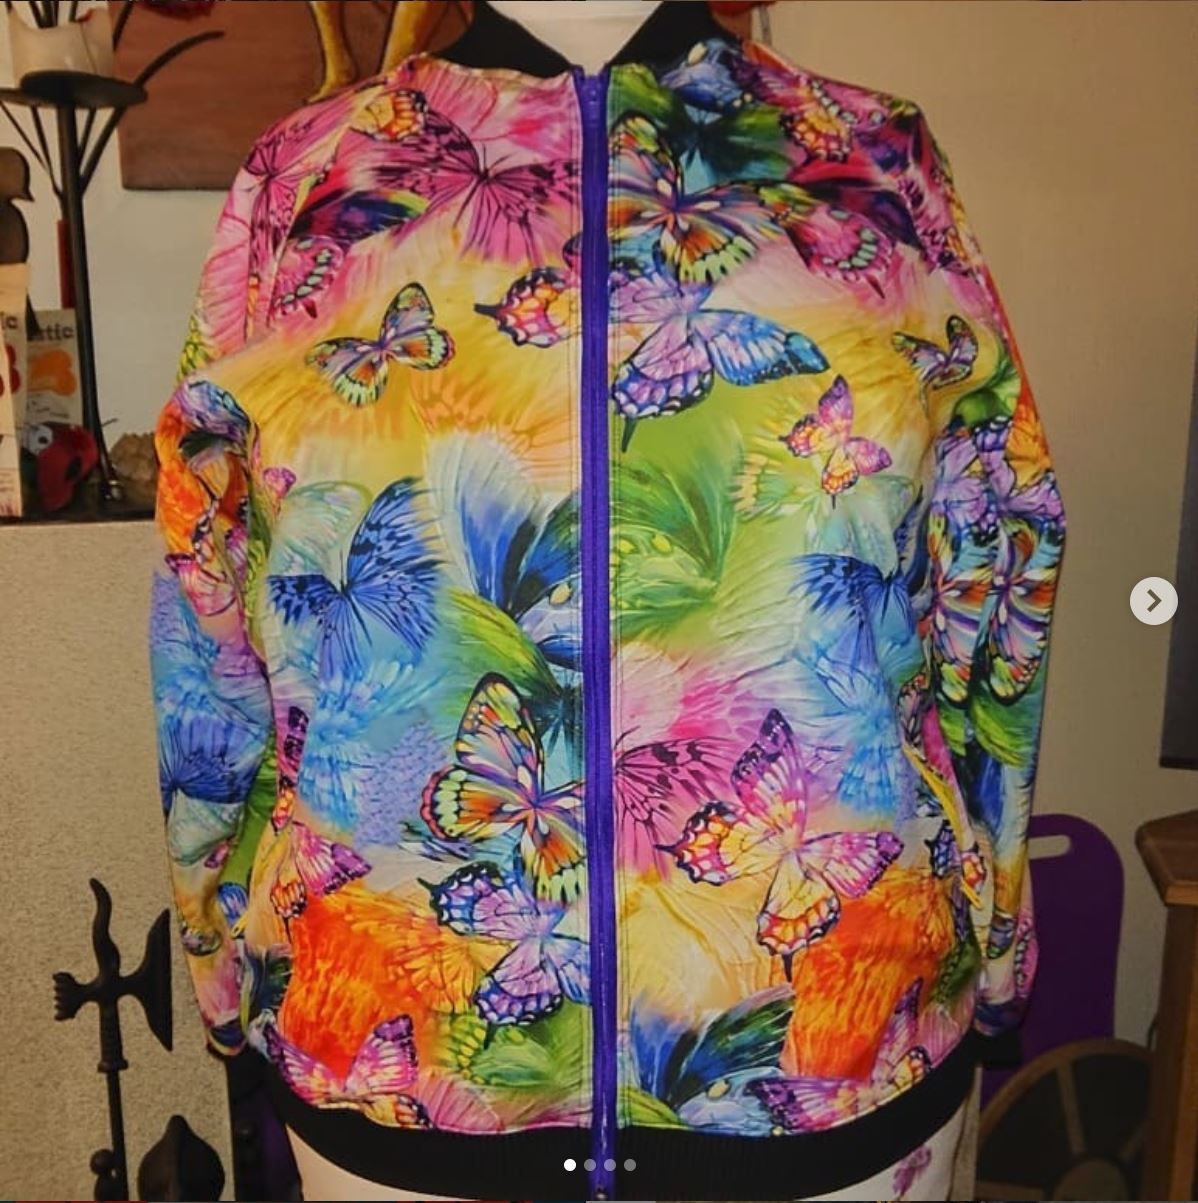 Very colourful jacket with butterflies